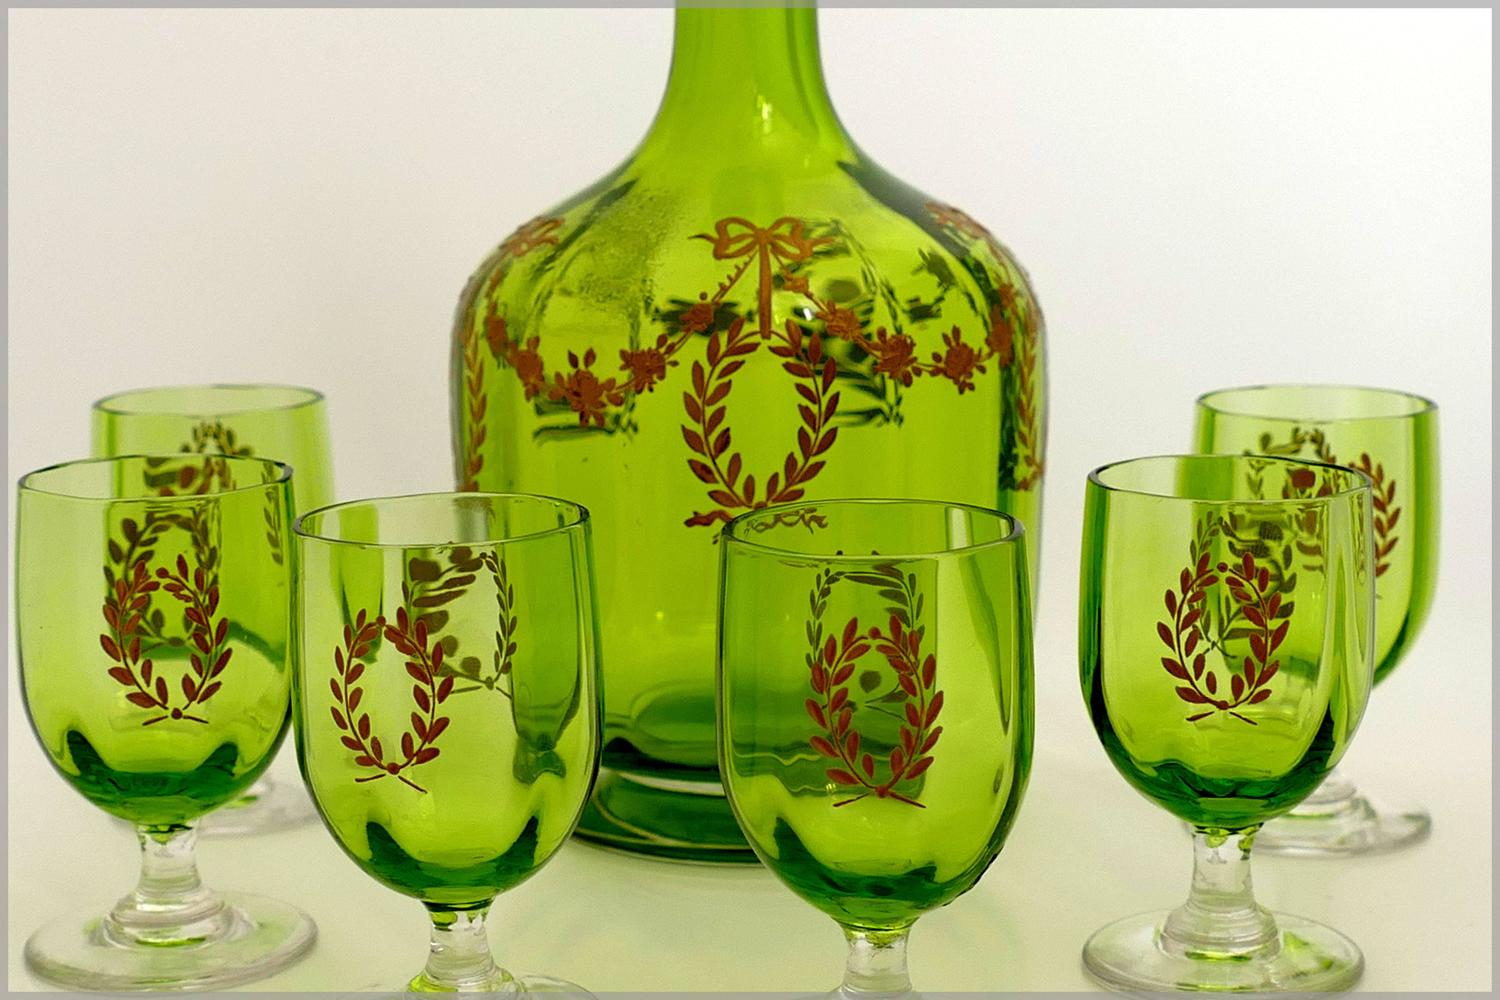 1900 rare baccarat gold green chartreuse crystal liquor or aperitif service for sale at 1stdibs. Black Bedroom Furniture Sets. Home Design Ideas